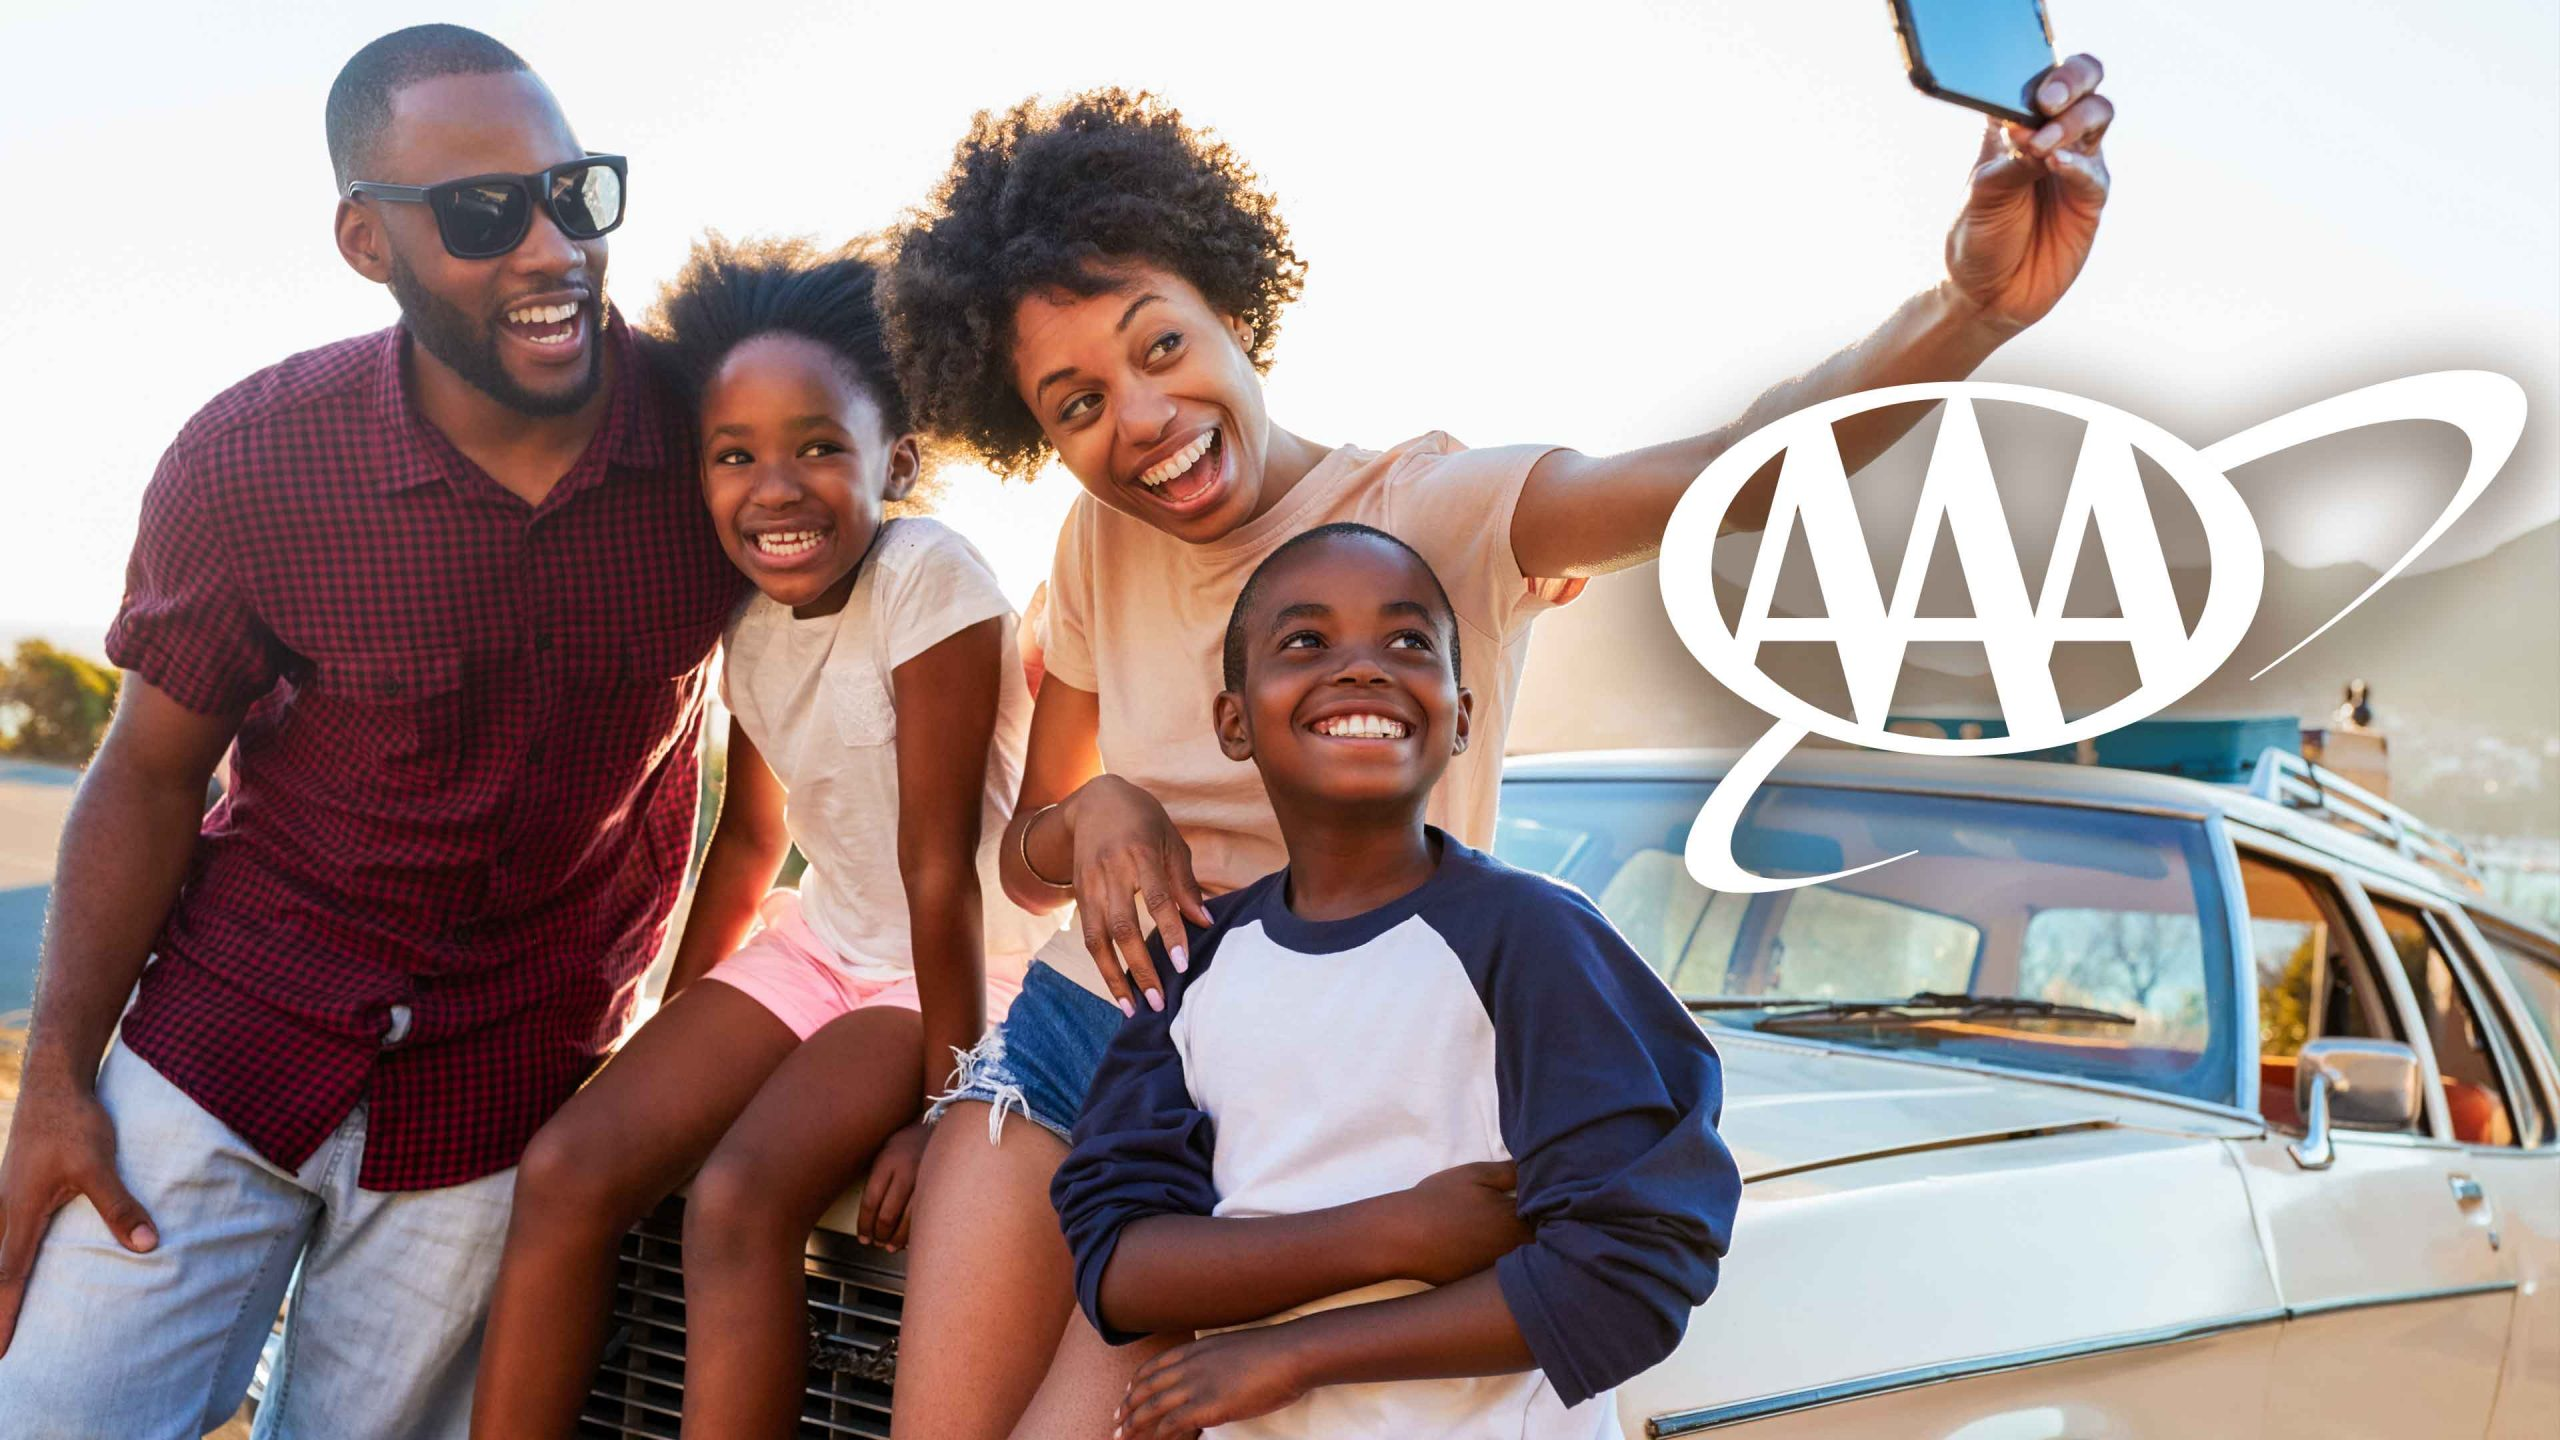 Young family on road trip taking selfie with AAA logo